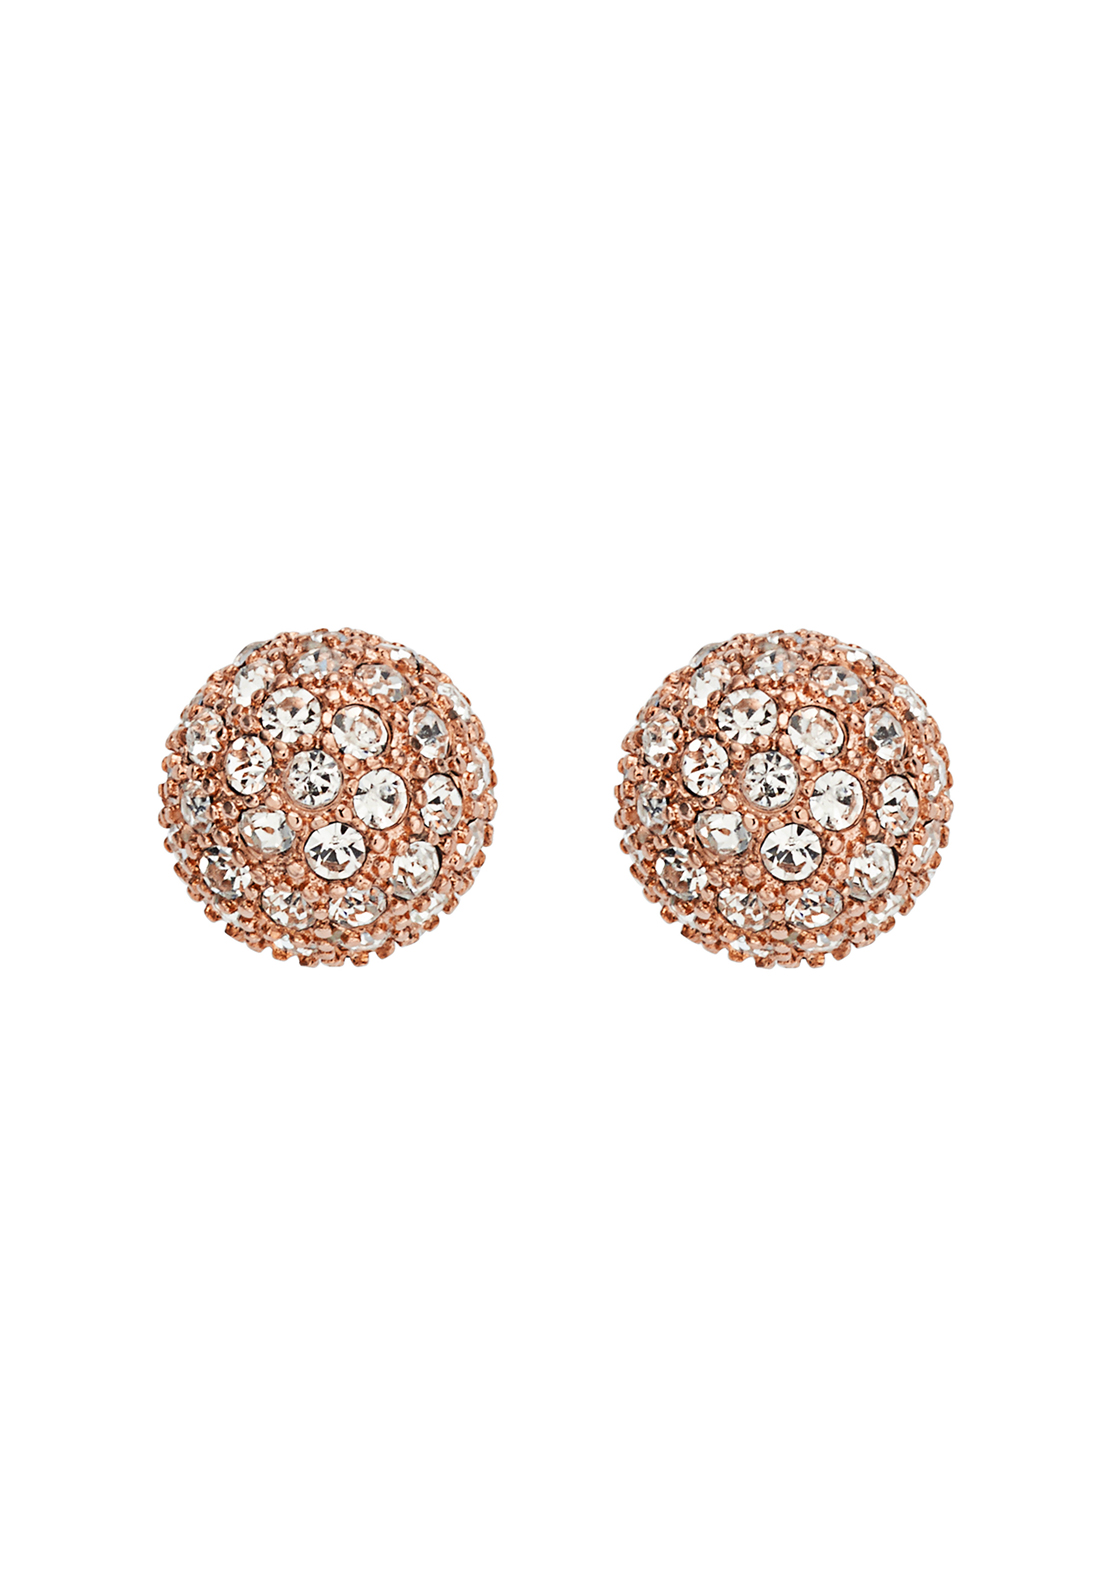 Fossil Crystal Ball Stud Earrings, Rose Gold